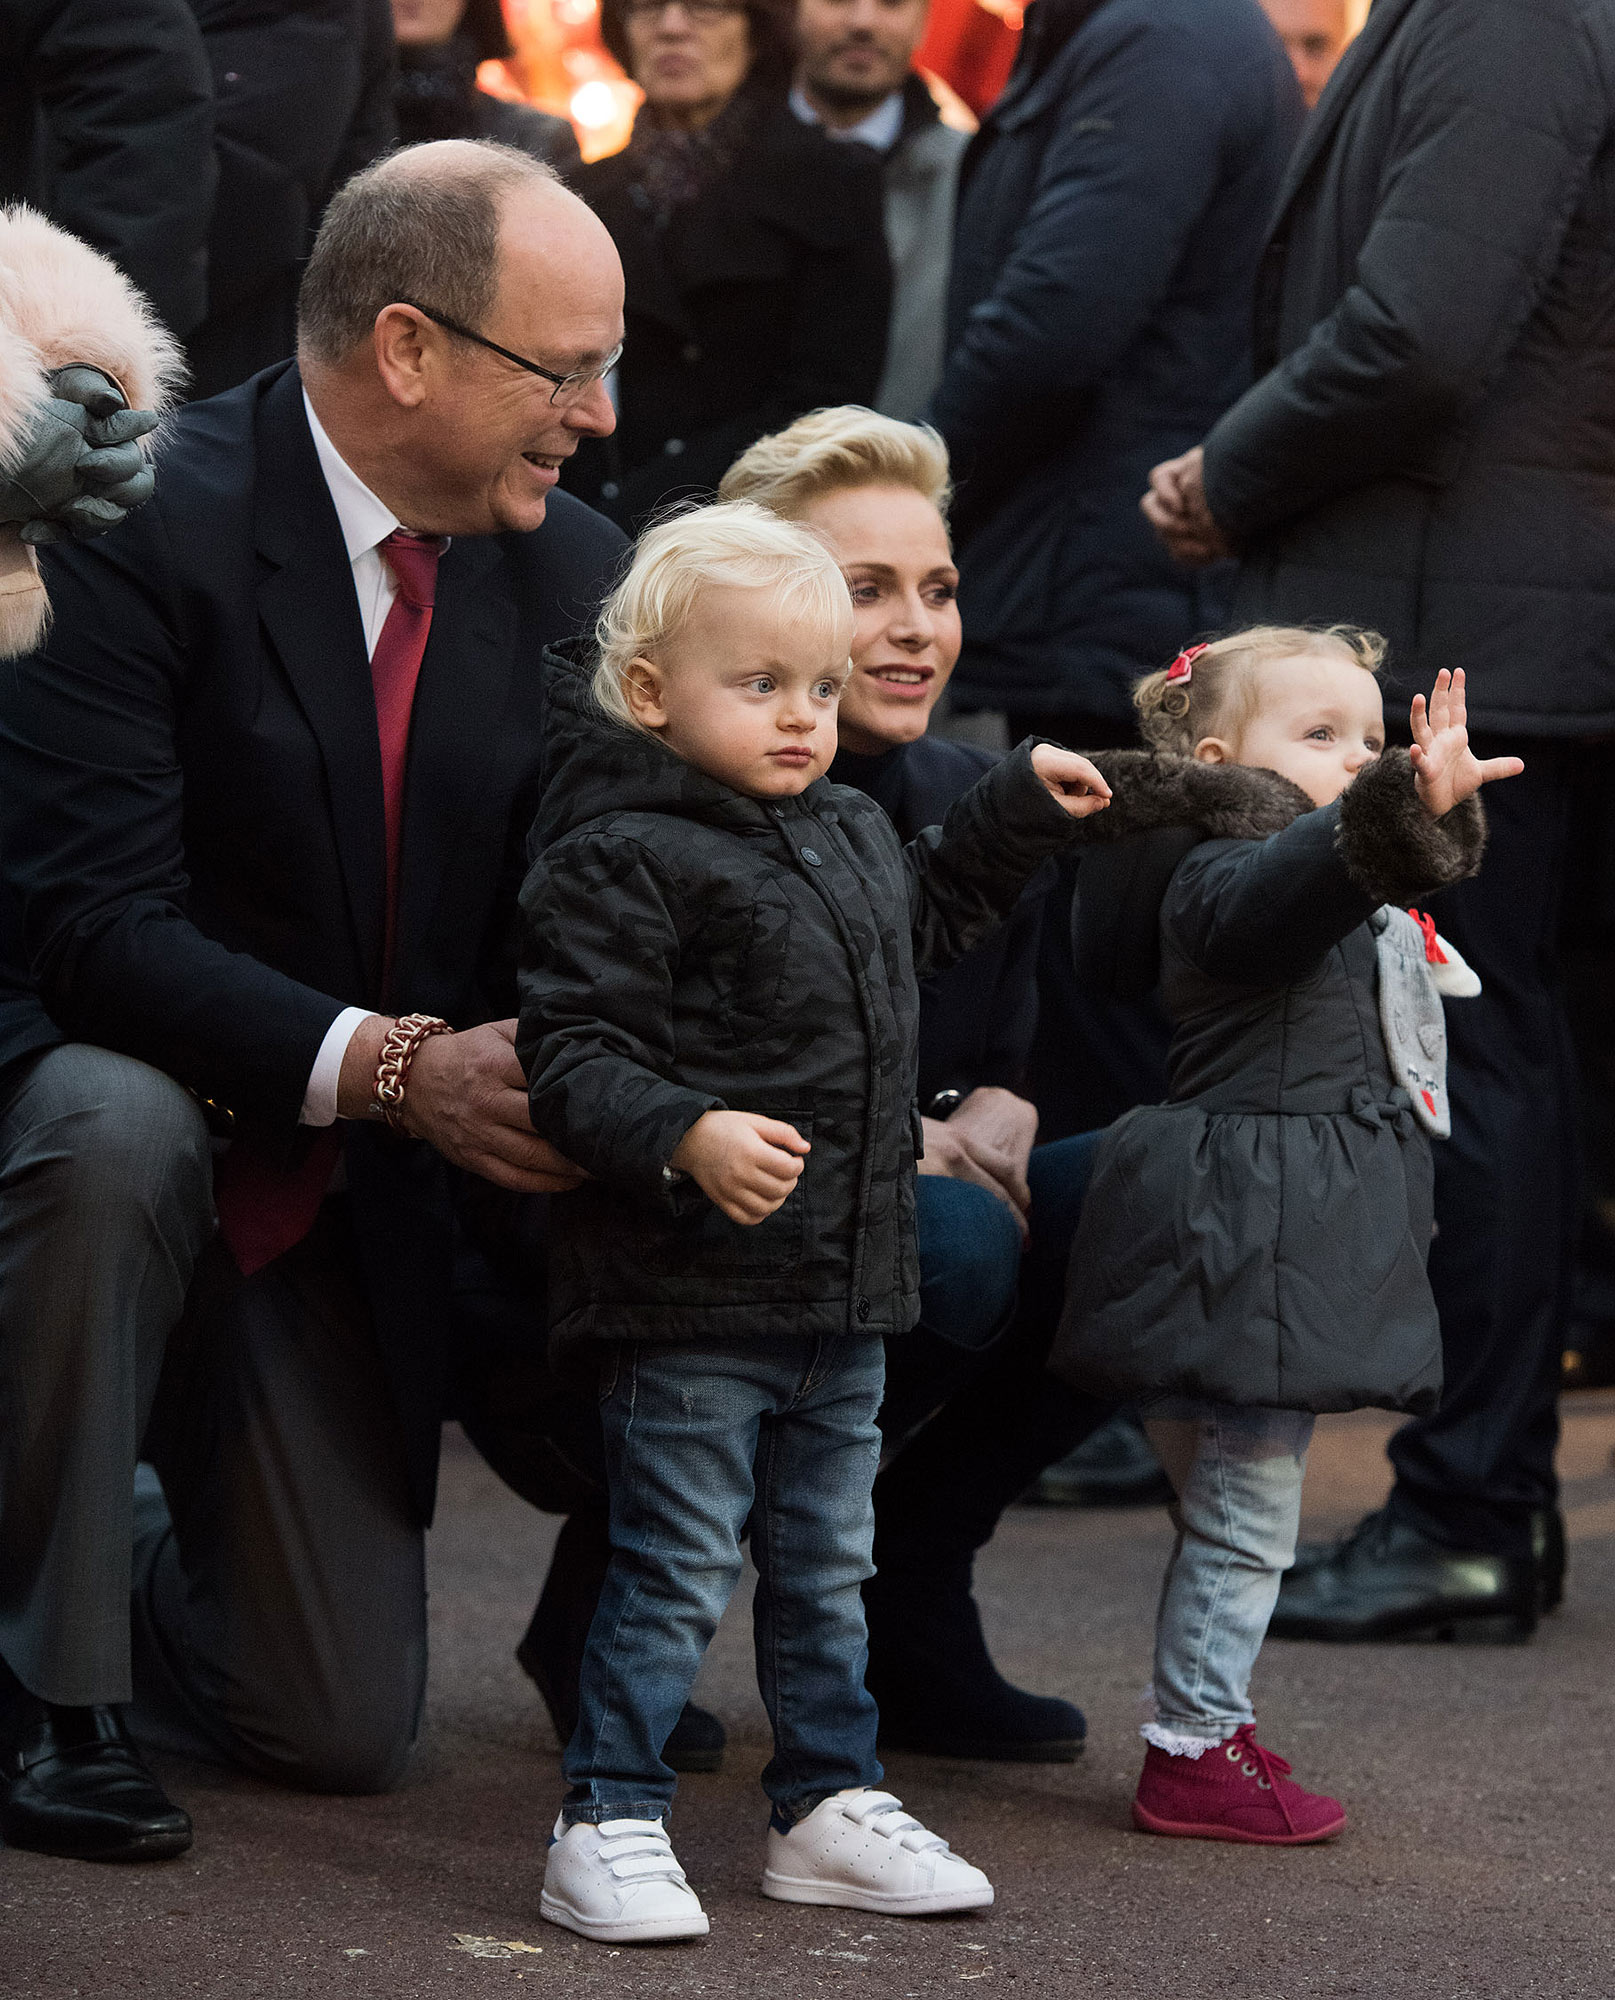 Princess Gabriella, Prince Jacques with parents Prince Albert II and Princess Charlene on December 3, 2015 at the inauguration of Monaco's traditional Christmas Village.